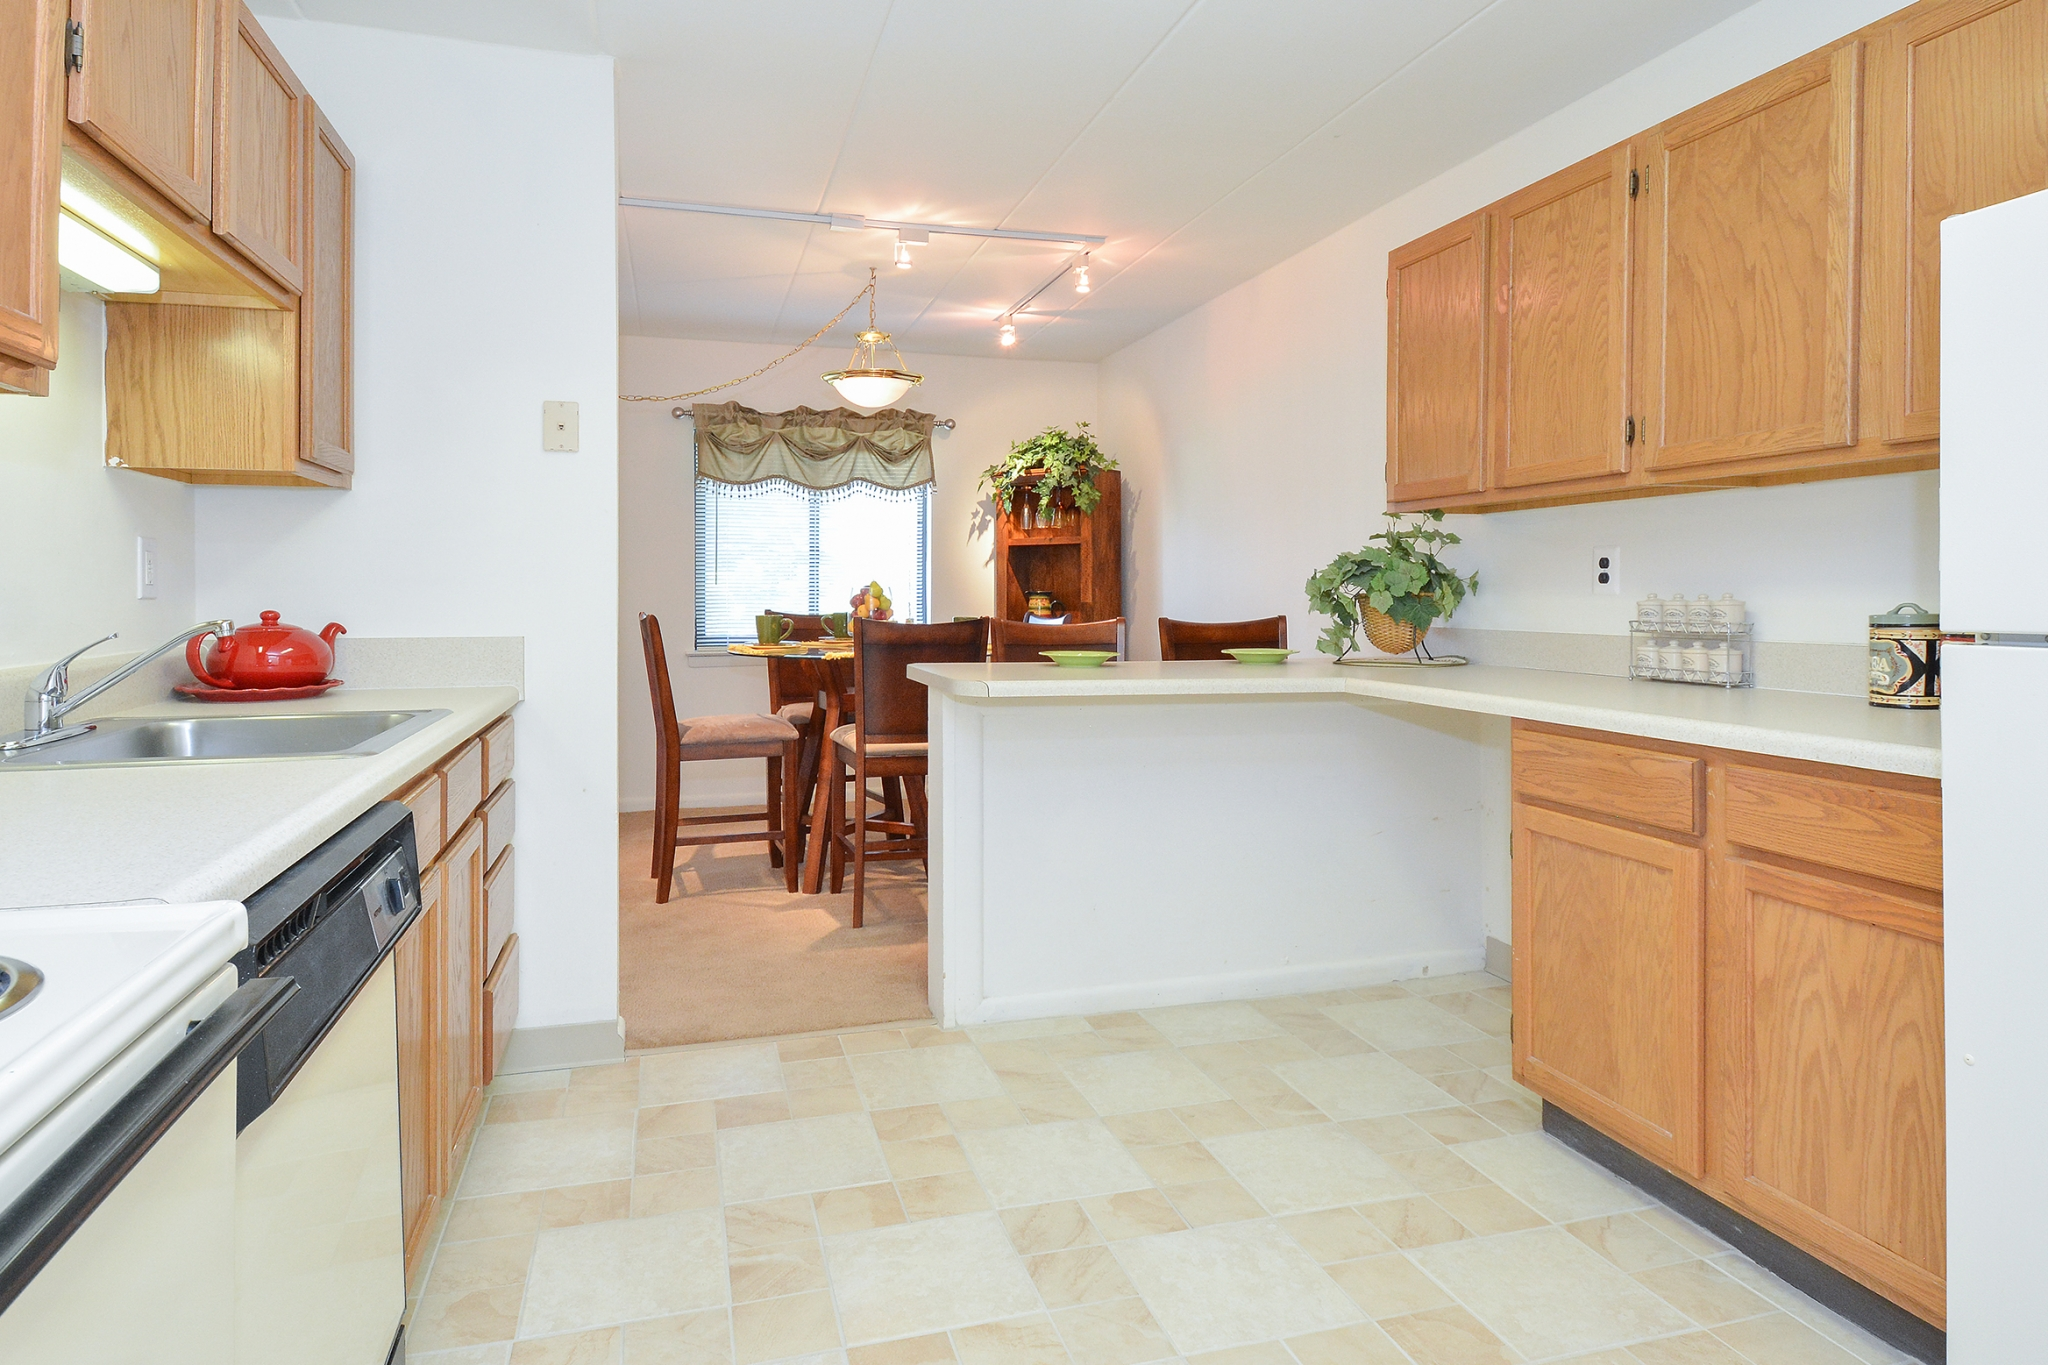 Fairway Park Sample Kitchen with Brown Cabinets and Tiled Floor | Apartments Near Wilmington DE